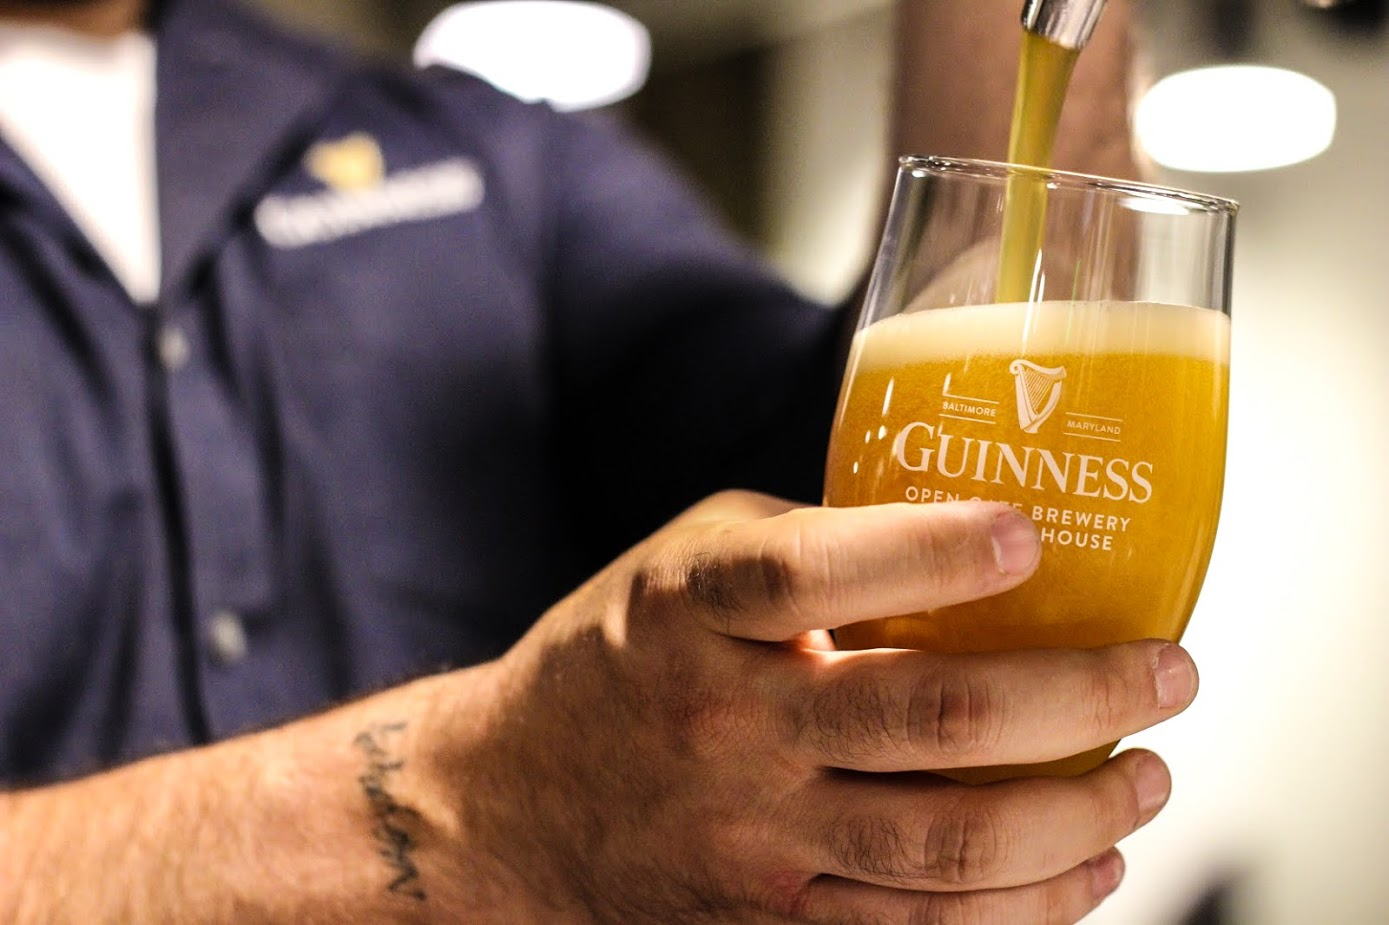 Pouring of beer at Guinness Open Gate Brewery & Barrel House